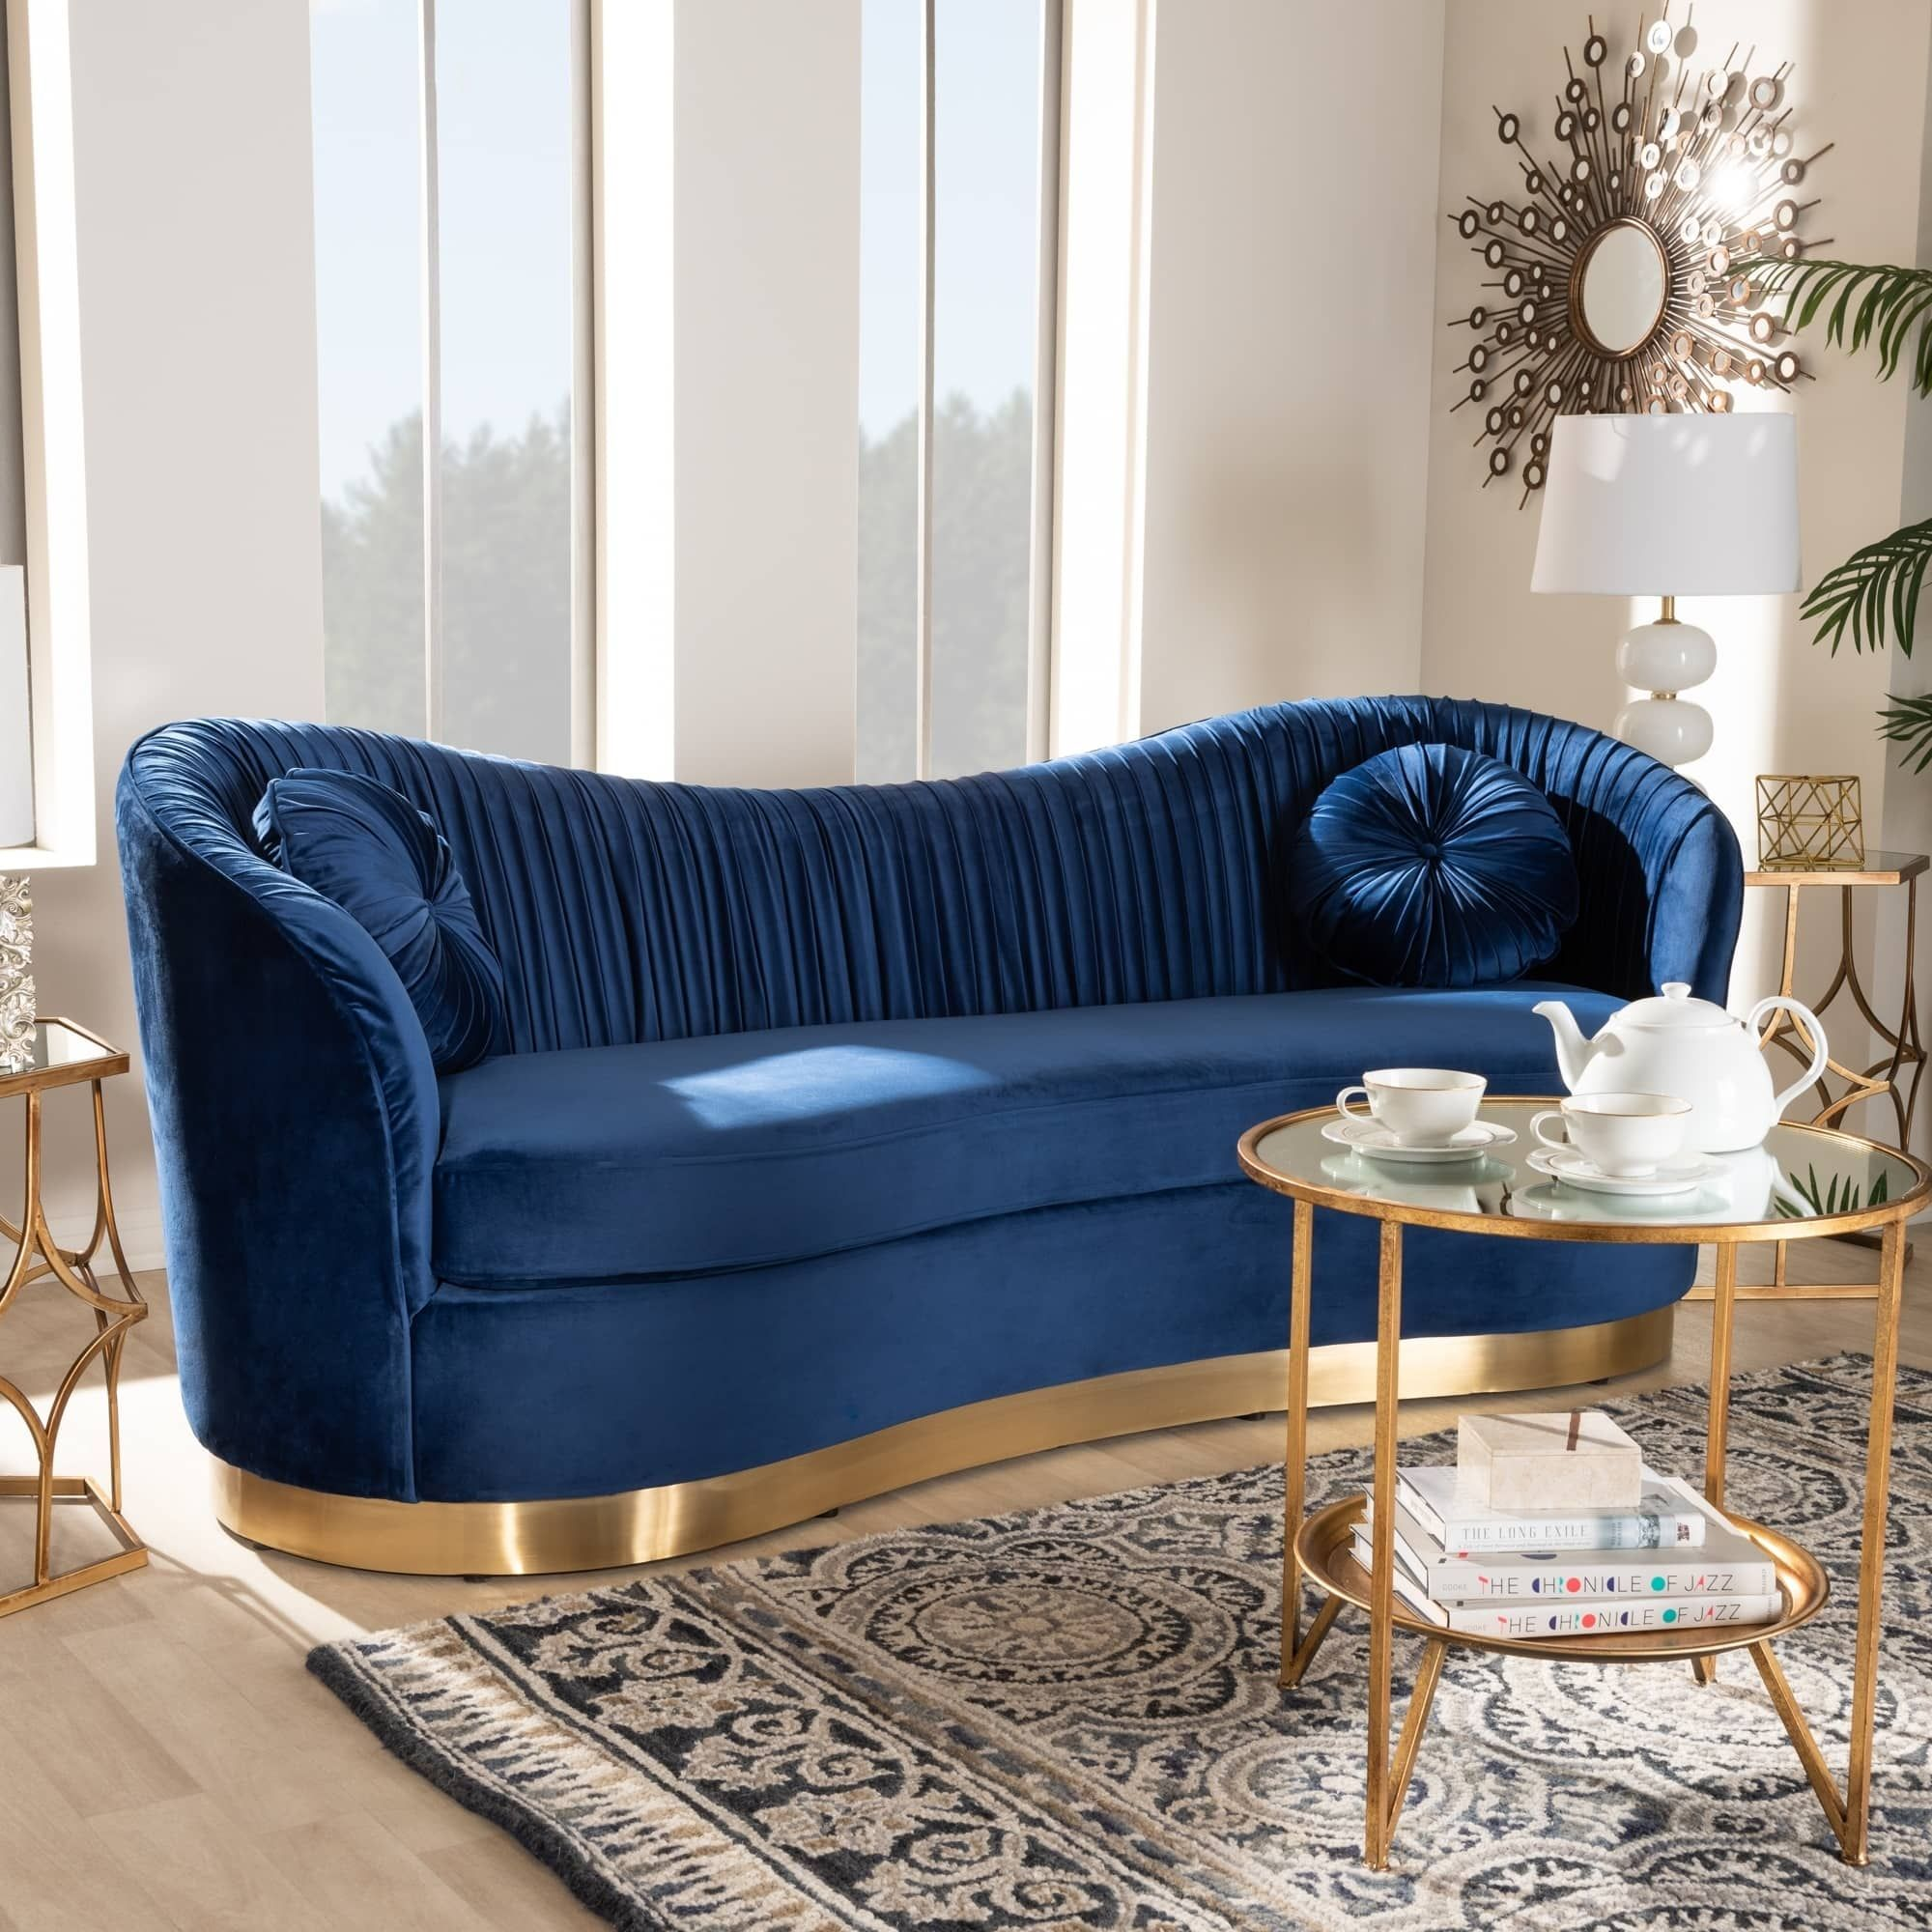 Buy Sofas & Couches Online at Overstock | Our Best Living Room Furniture  Deals | Blue furniture living room, Velvet sofa living room, Blue living  room